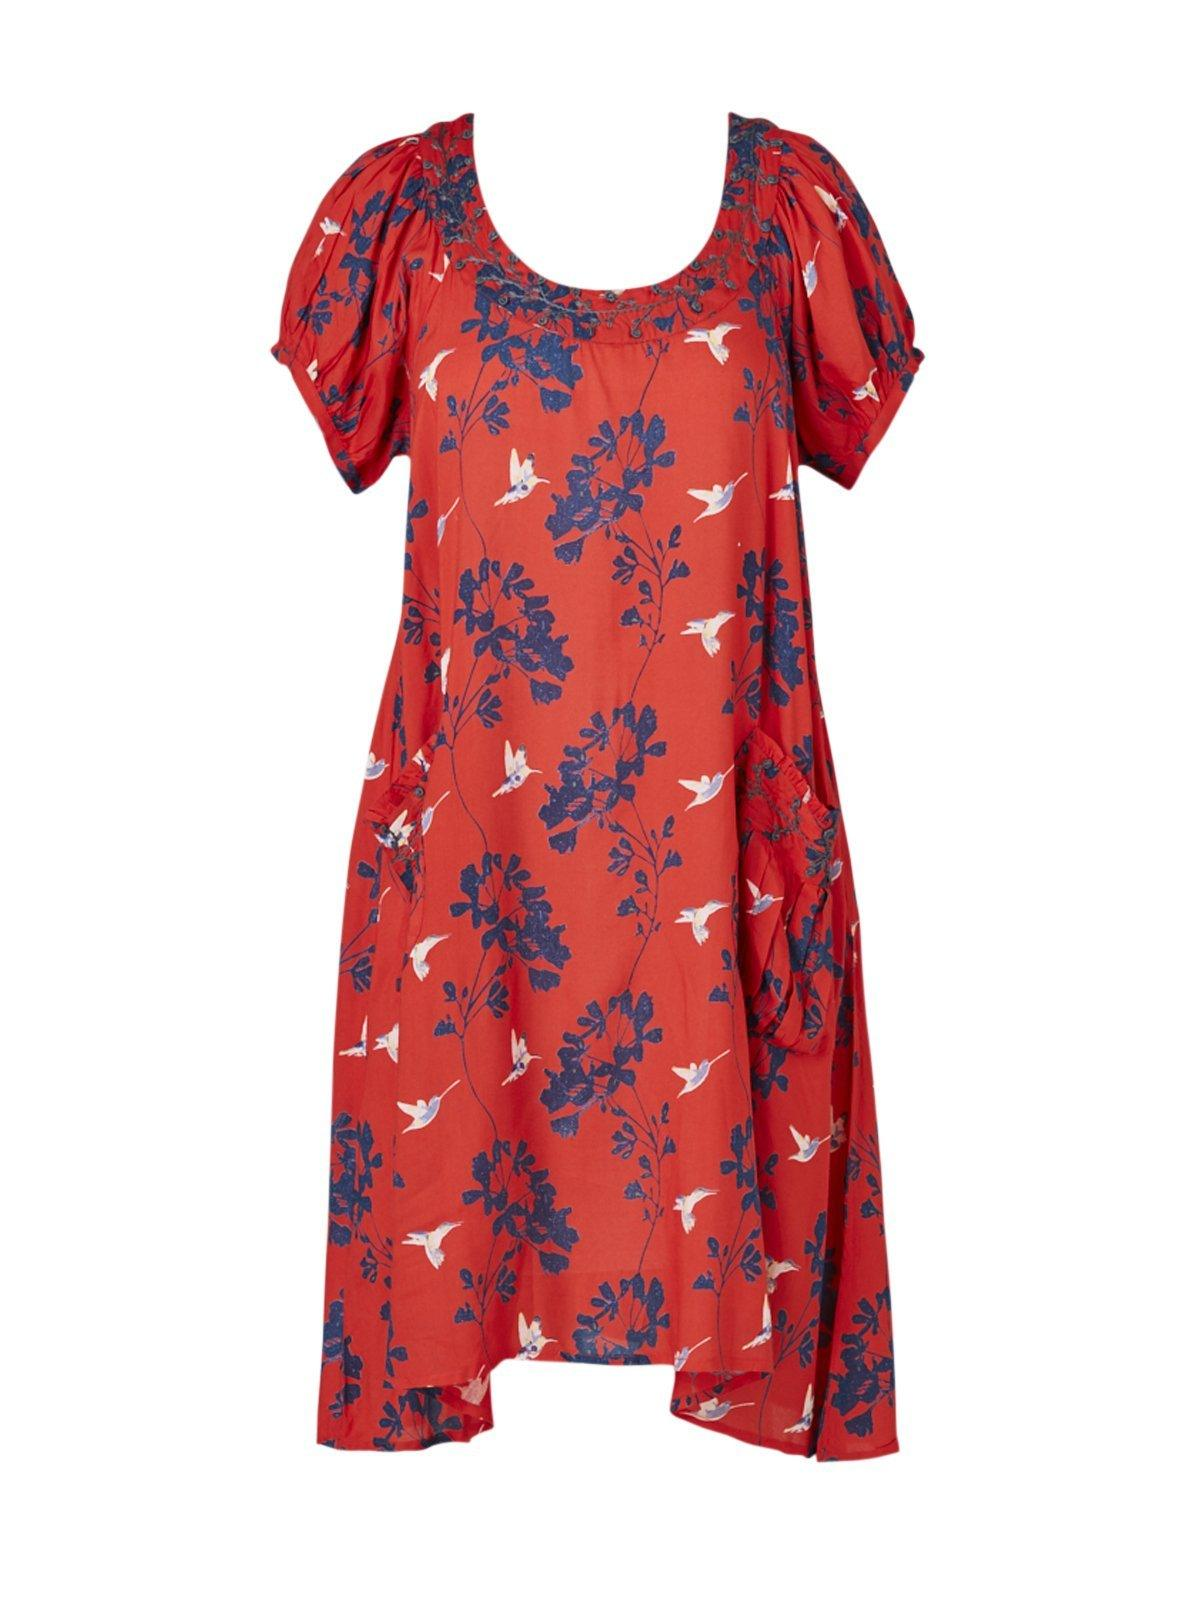 CAKE MORNING TEA DRESS-Dresses-CAKE-ENNI